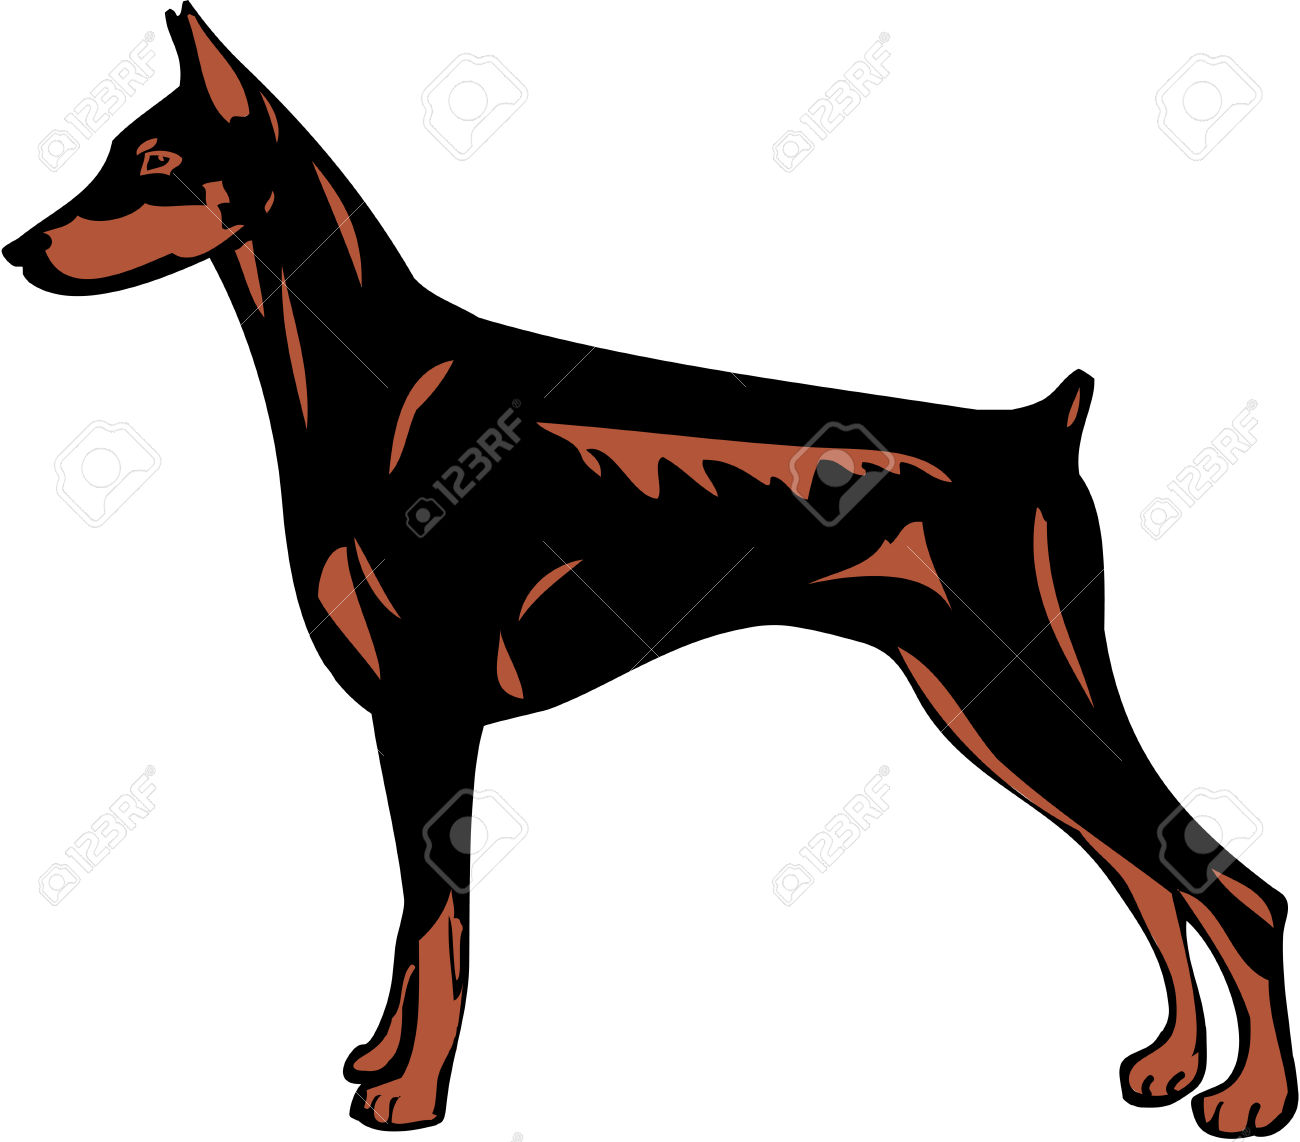 Doberman Pinscher clipart #17, Download drawings